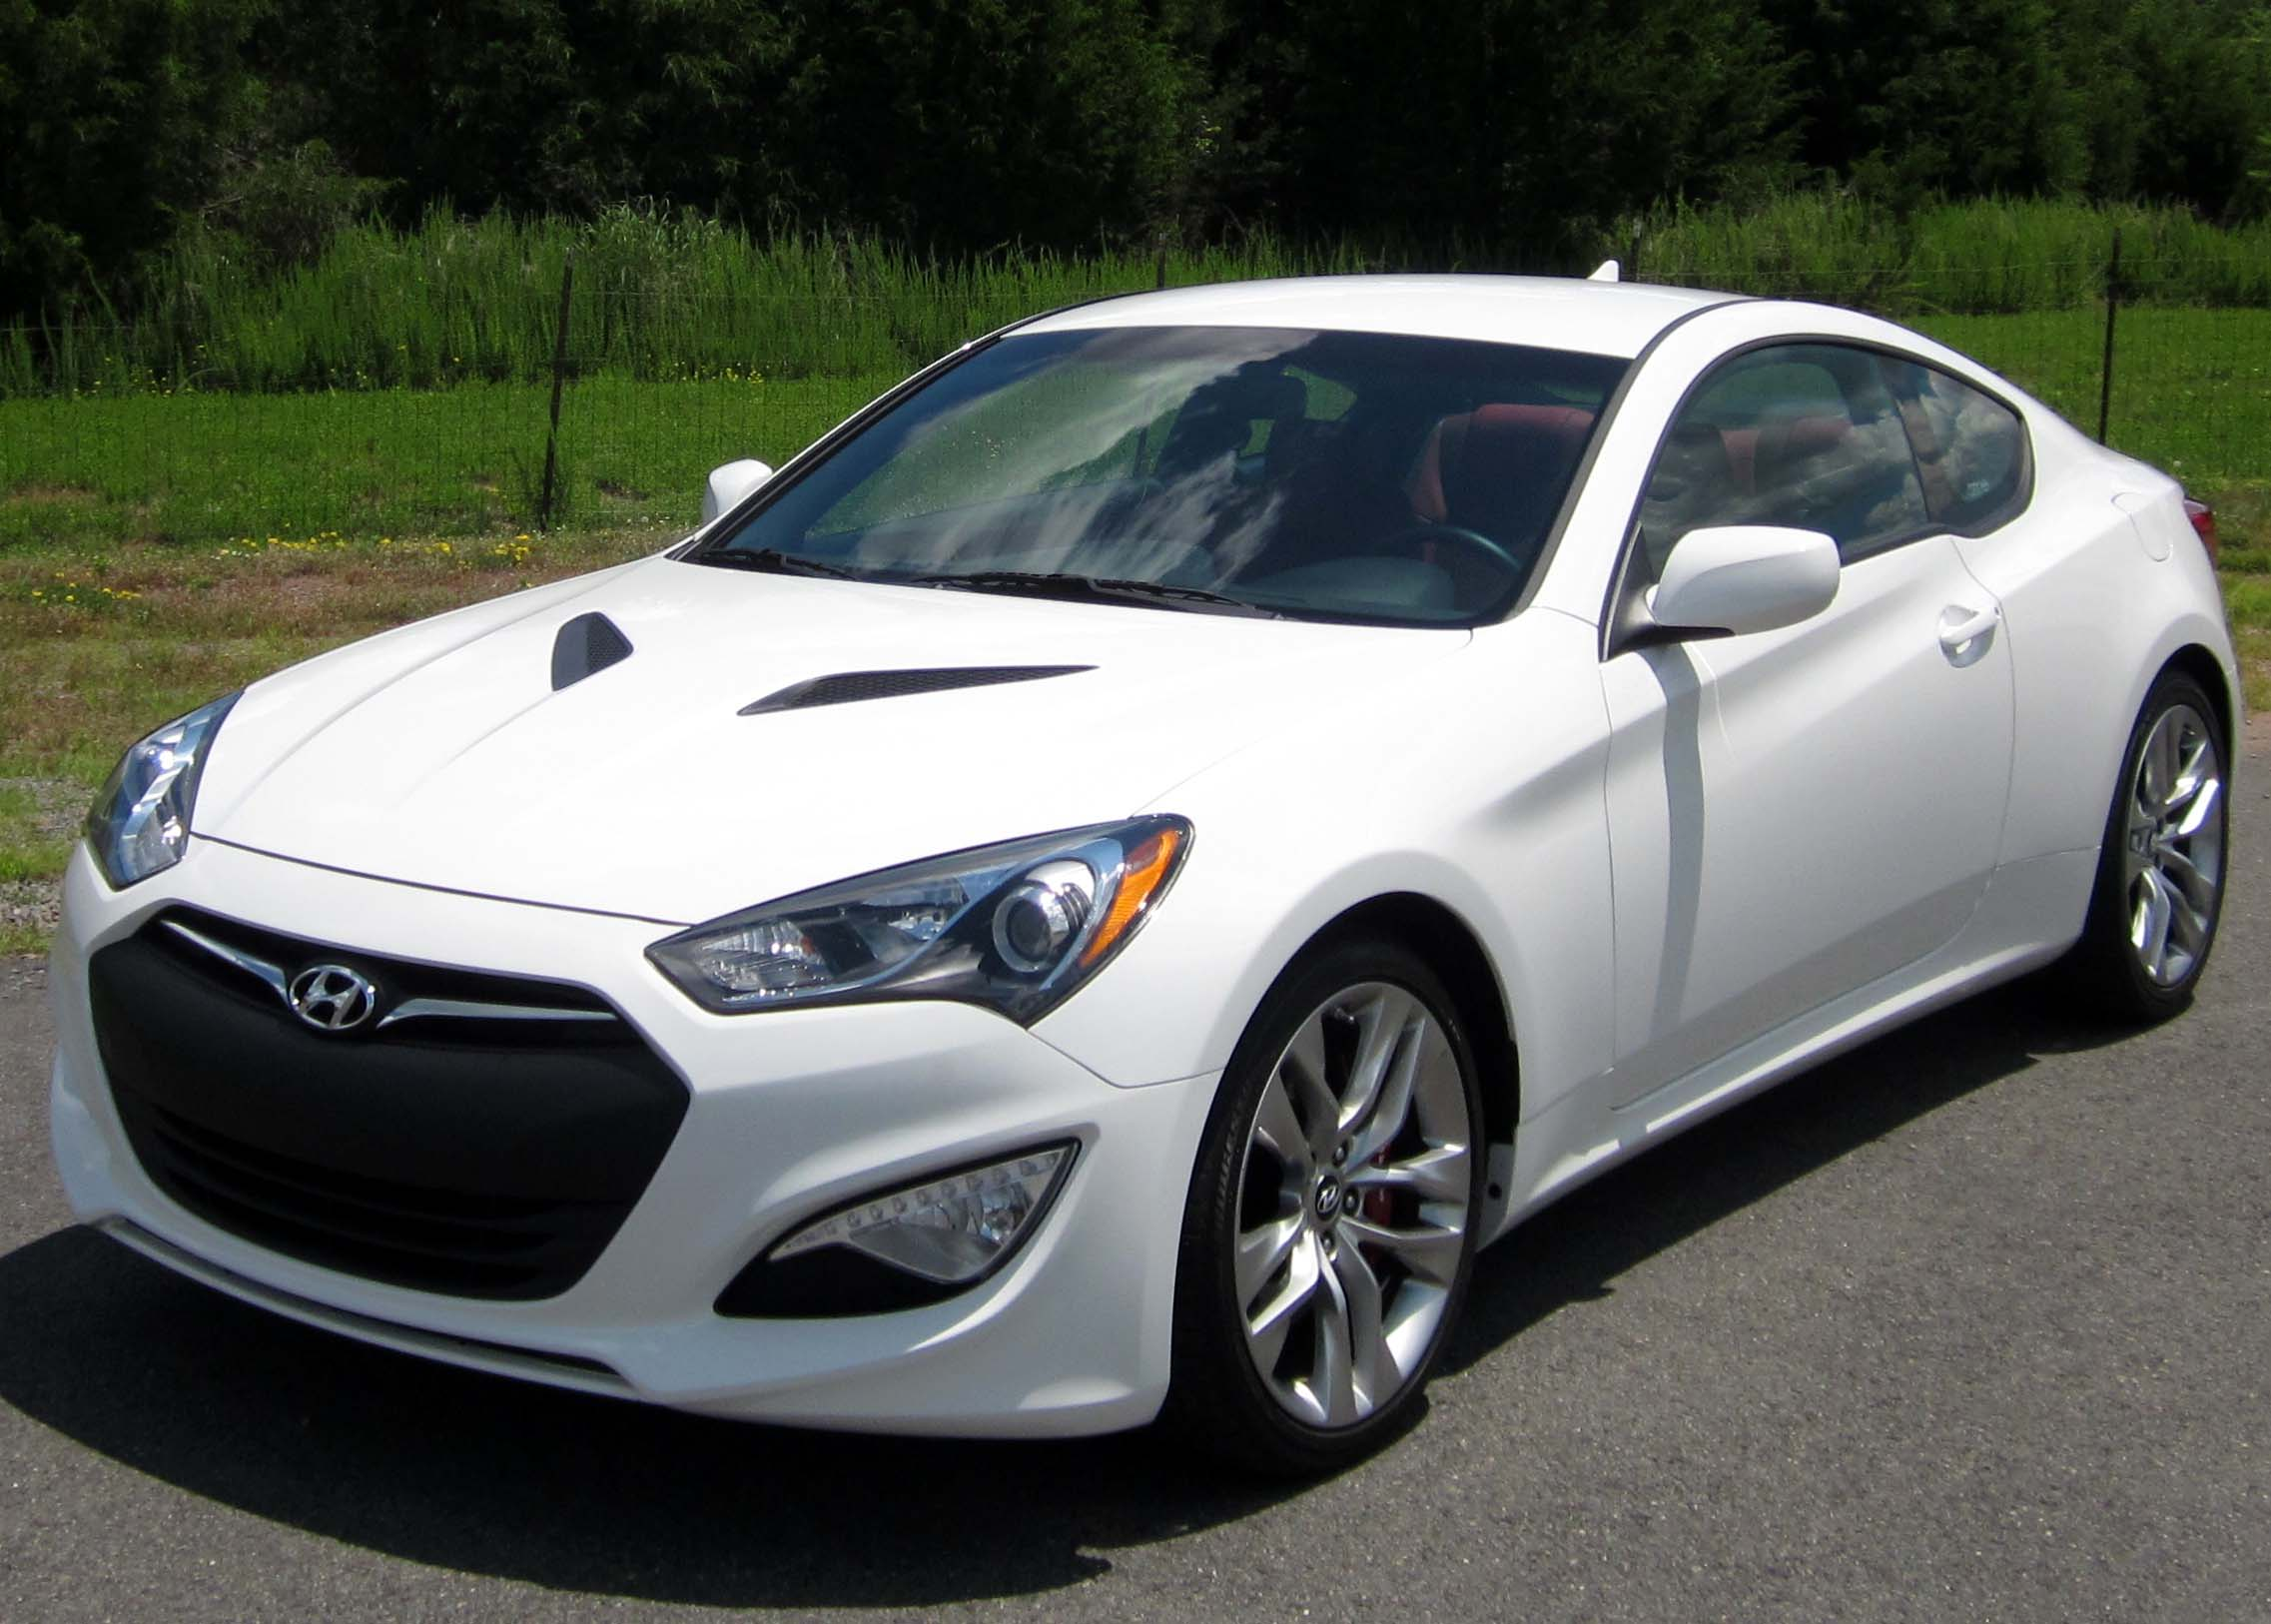 Description 2013 Hyundai Genesis Coupe 3 8 R-Spec -- 06-15-2012 2 JPGHyundai Genesis 2013